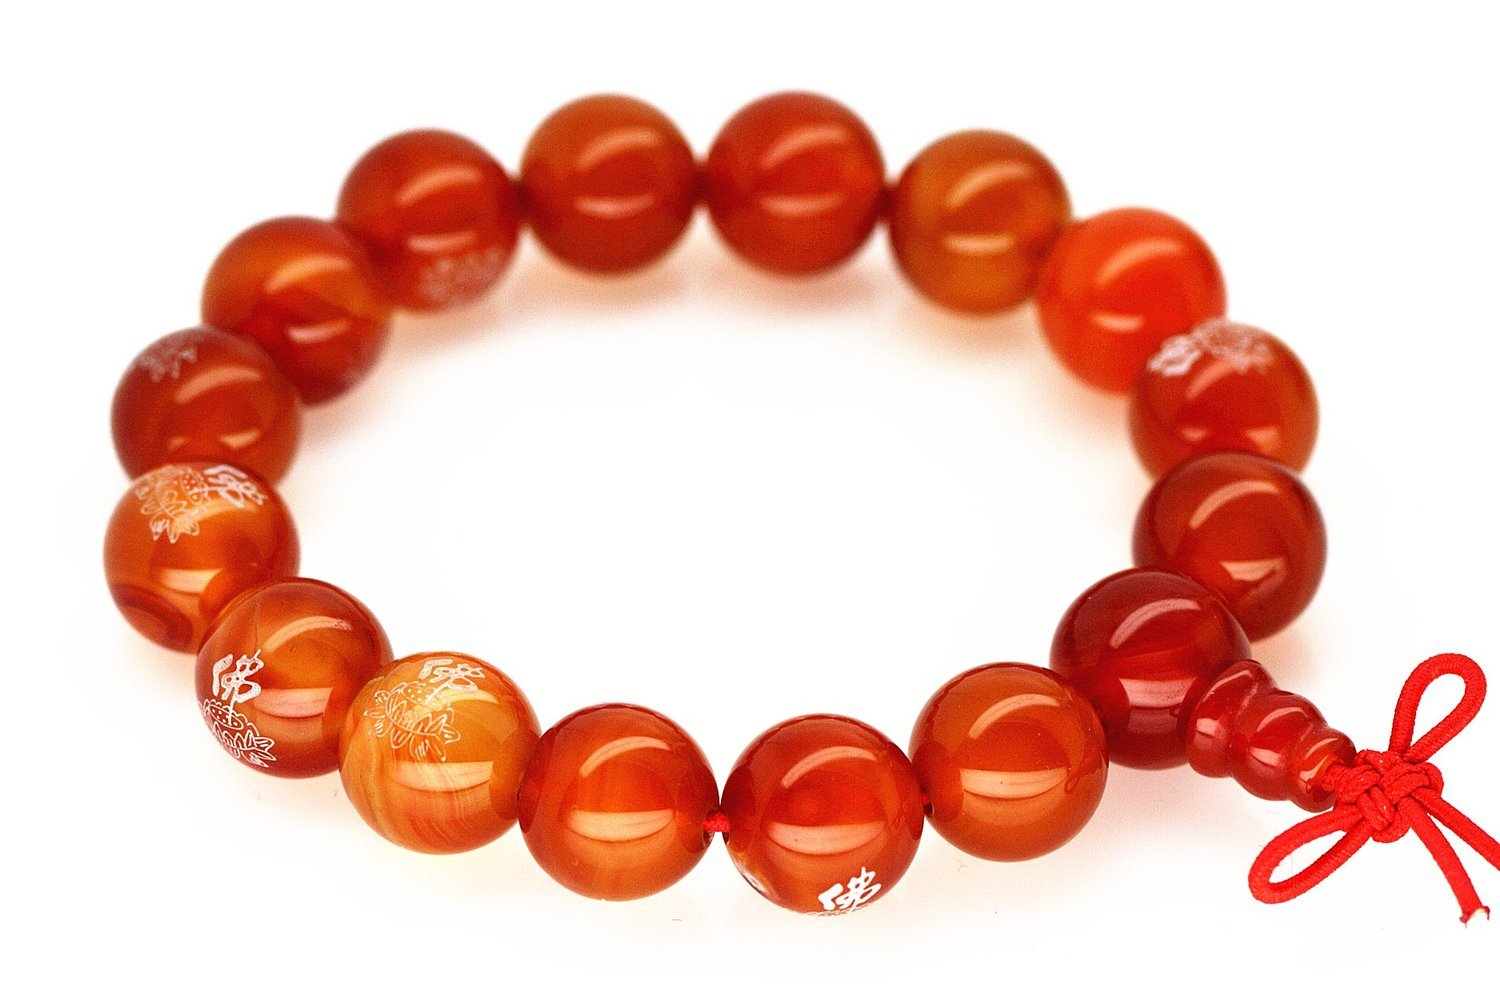 Primary image for Red Agate Large Beads Meditation Bracelet Men Woman Prayer